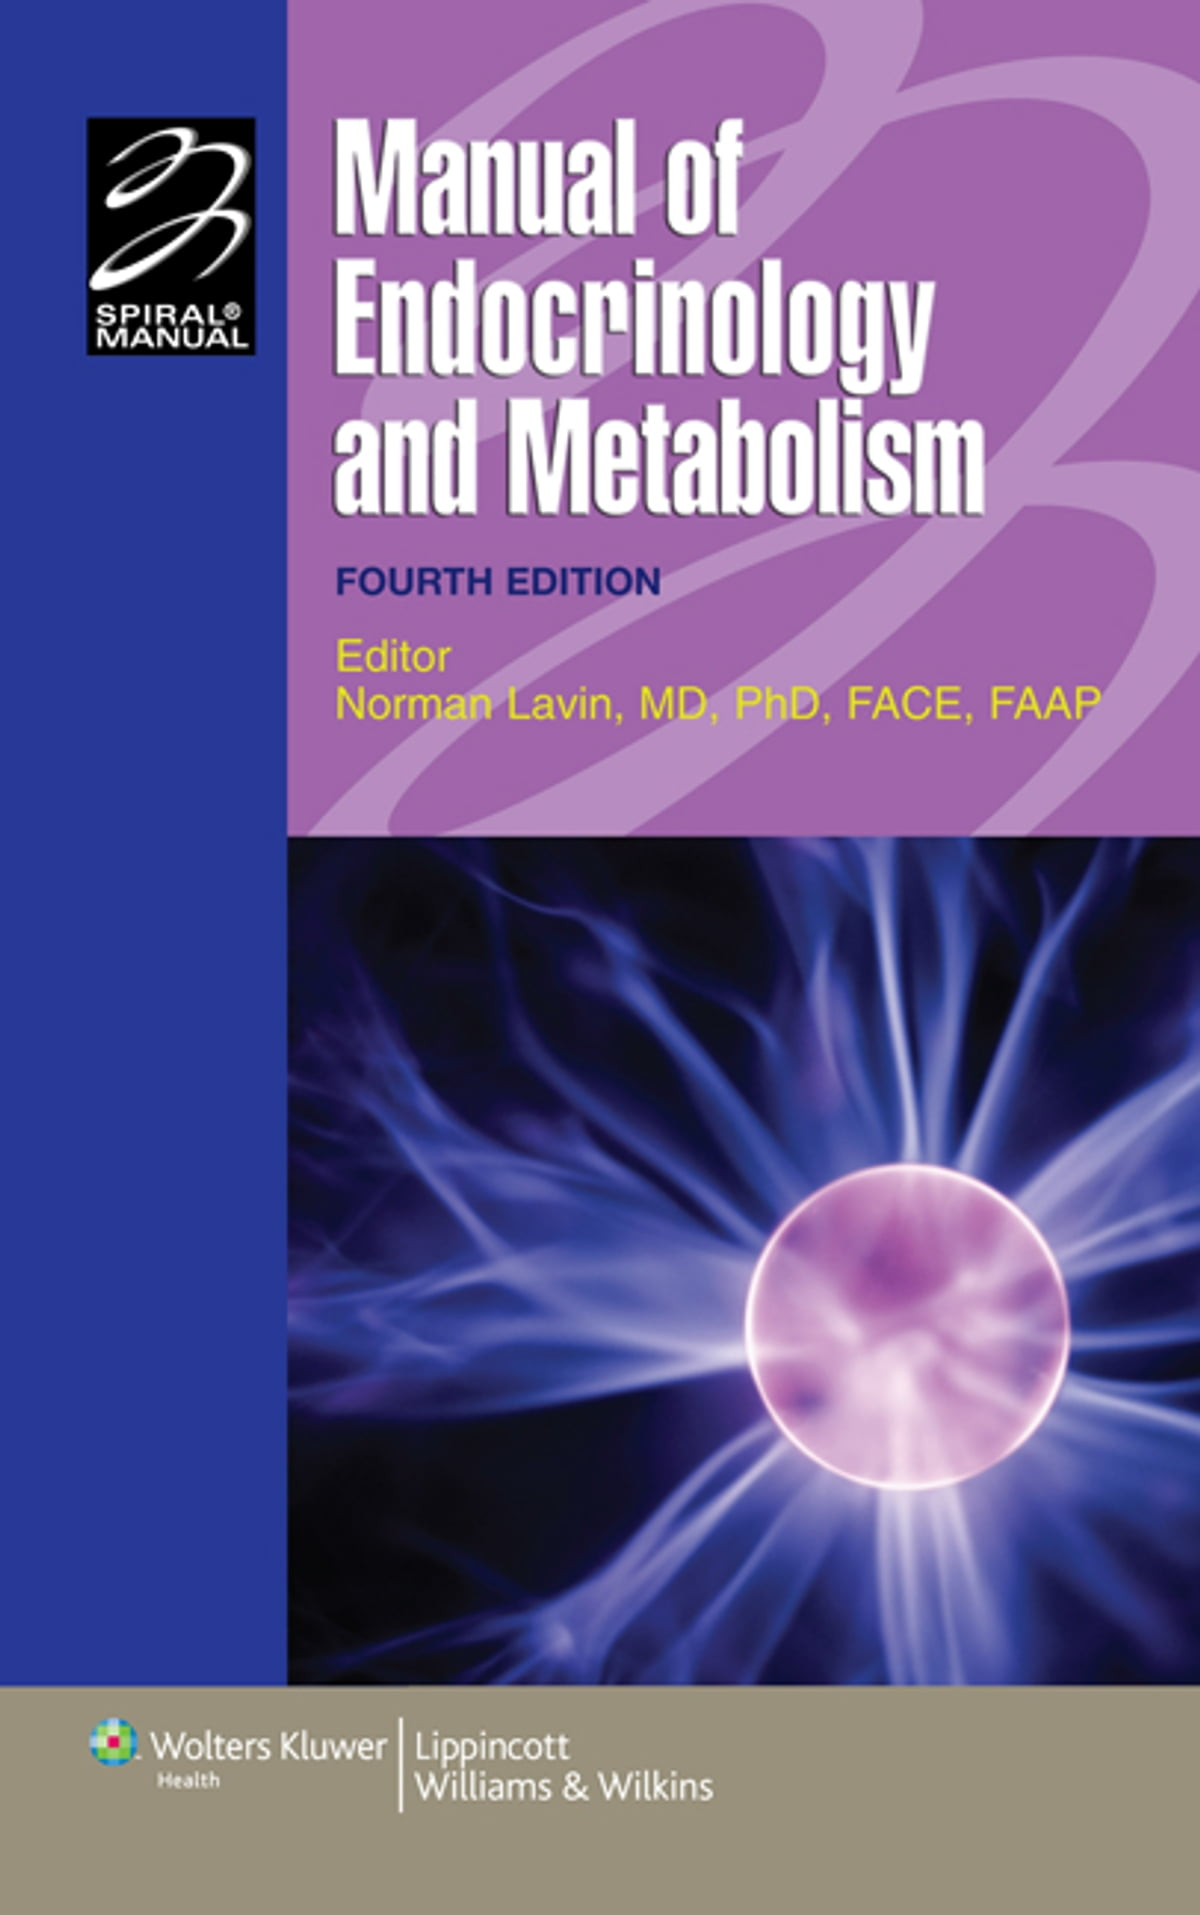 Manual of Endocrinology and Metabolism eBook by Norman Lavin -  9781451149142 | Rakuten Kobo